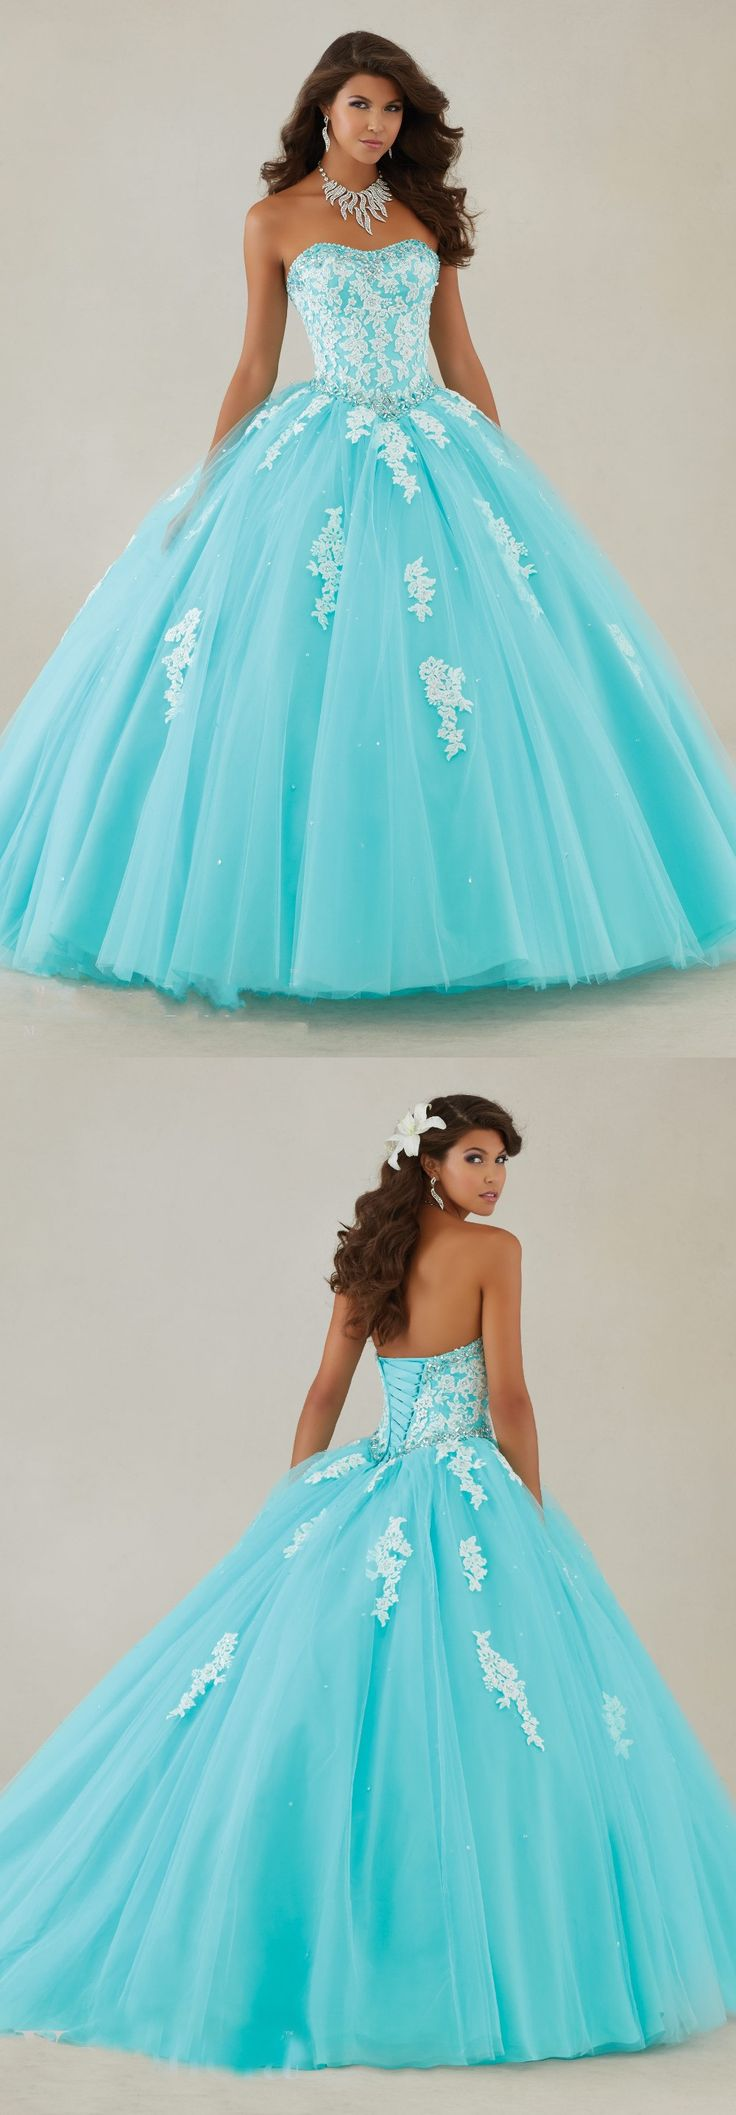 Blue Quinceanera Dresses,Ball Gown Dress,Appliques Quinceanera Dresses,Sweet 16 Dress,